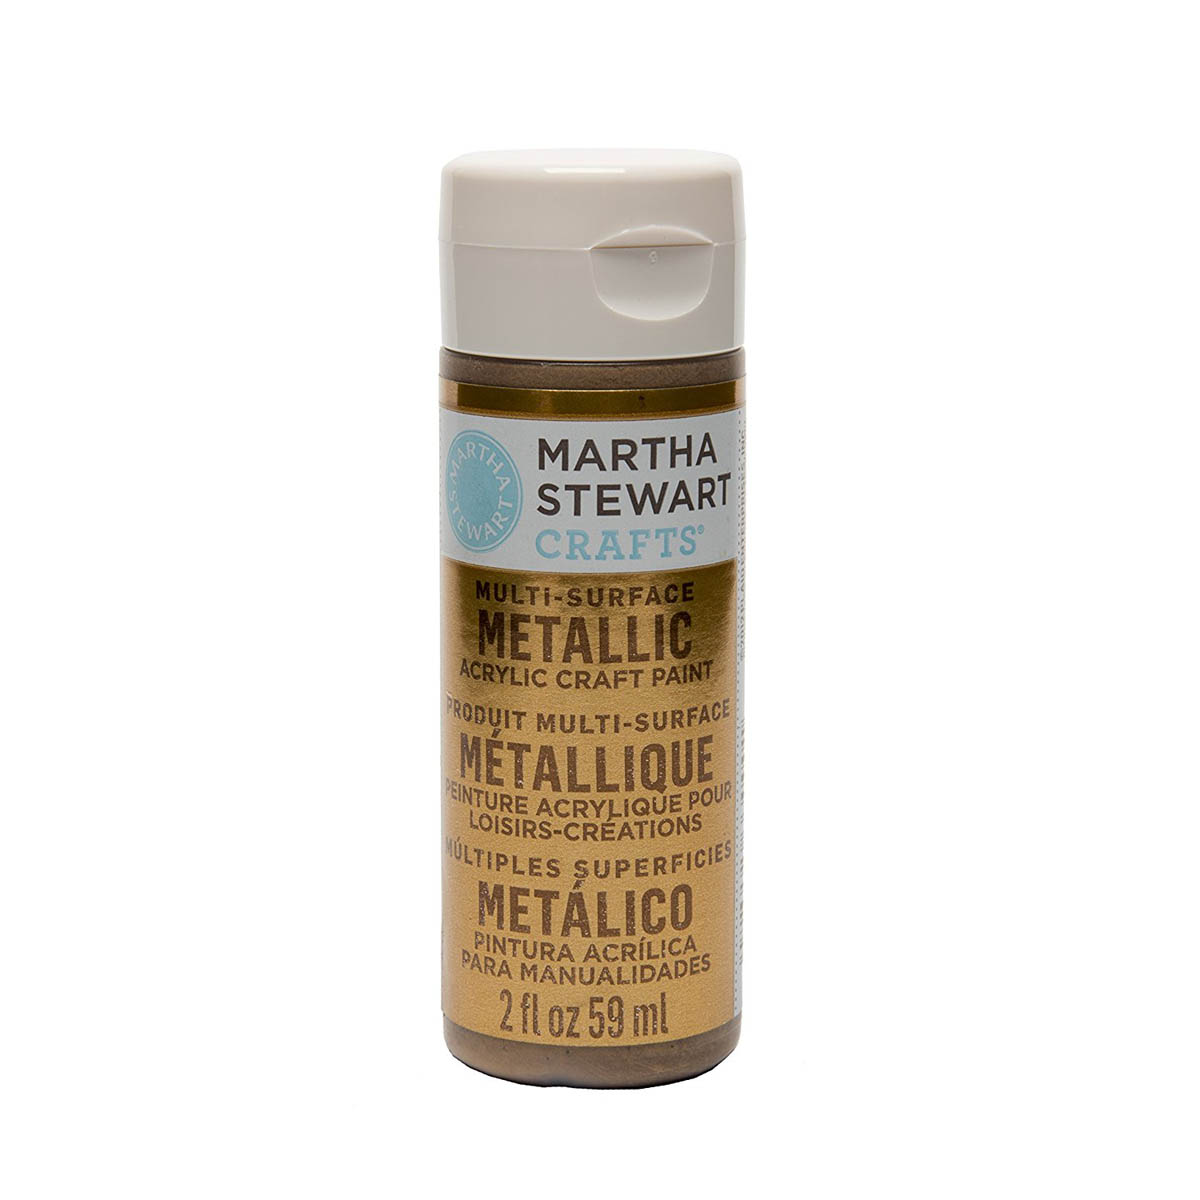 Martha Stewart® 2oz Multi-Surface Metallic Acrylic Craft Paint - Brushed Bronze